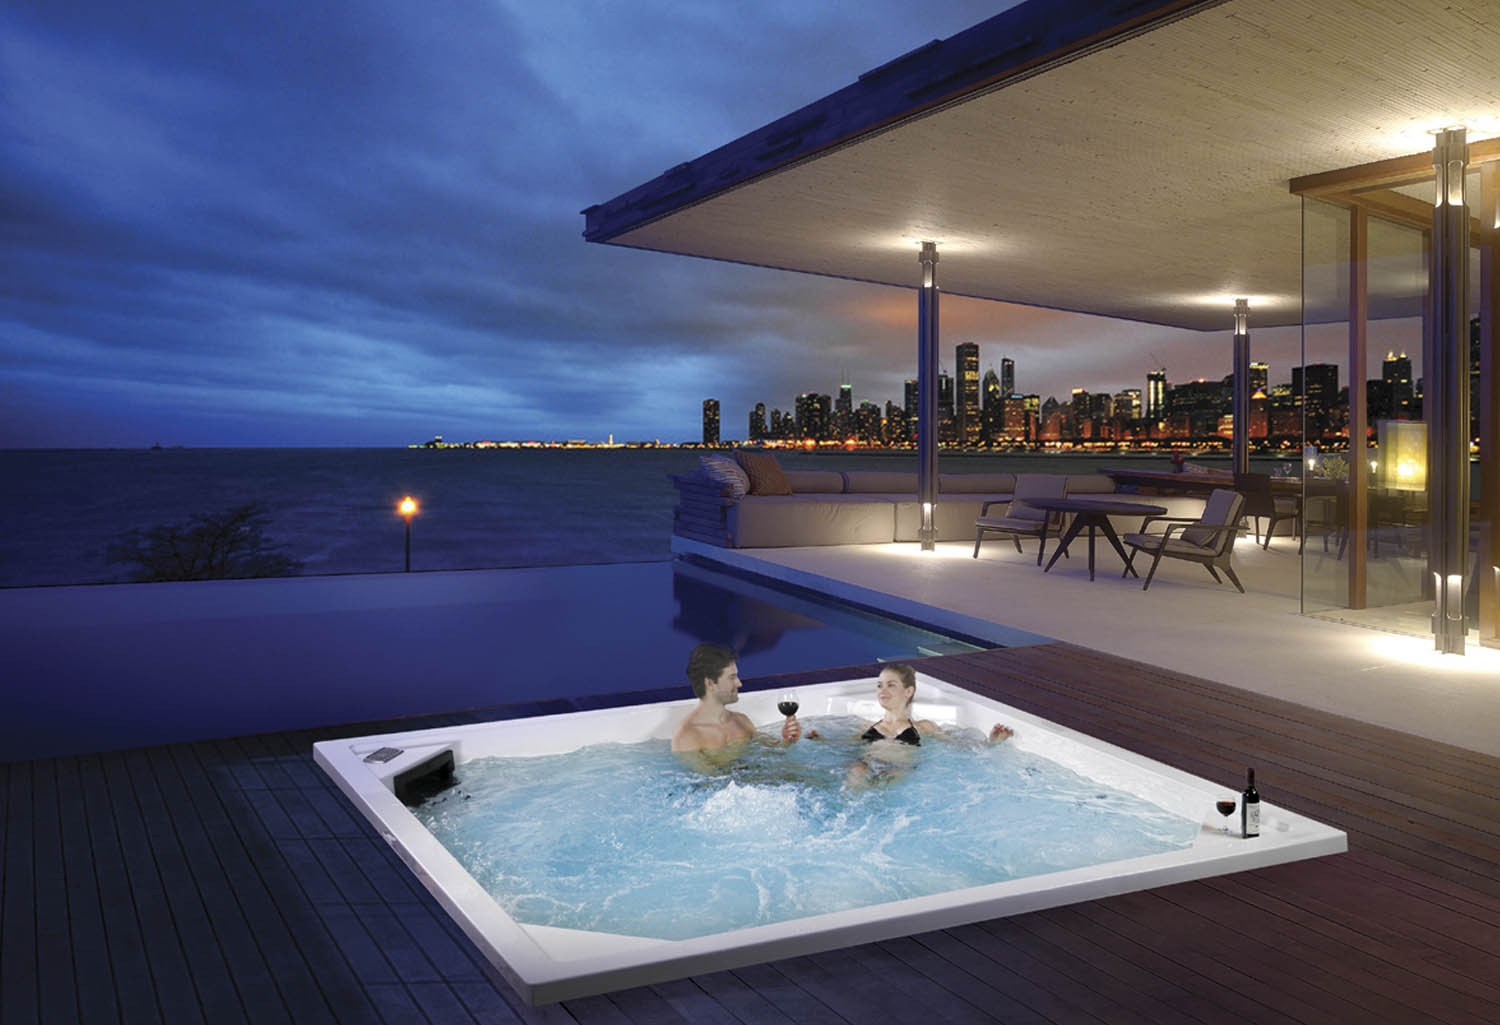 Tamano Jacuzzi.Spa Jacuzzi Exterior Cool Spa Jacuzzi Exterior With Spa